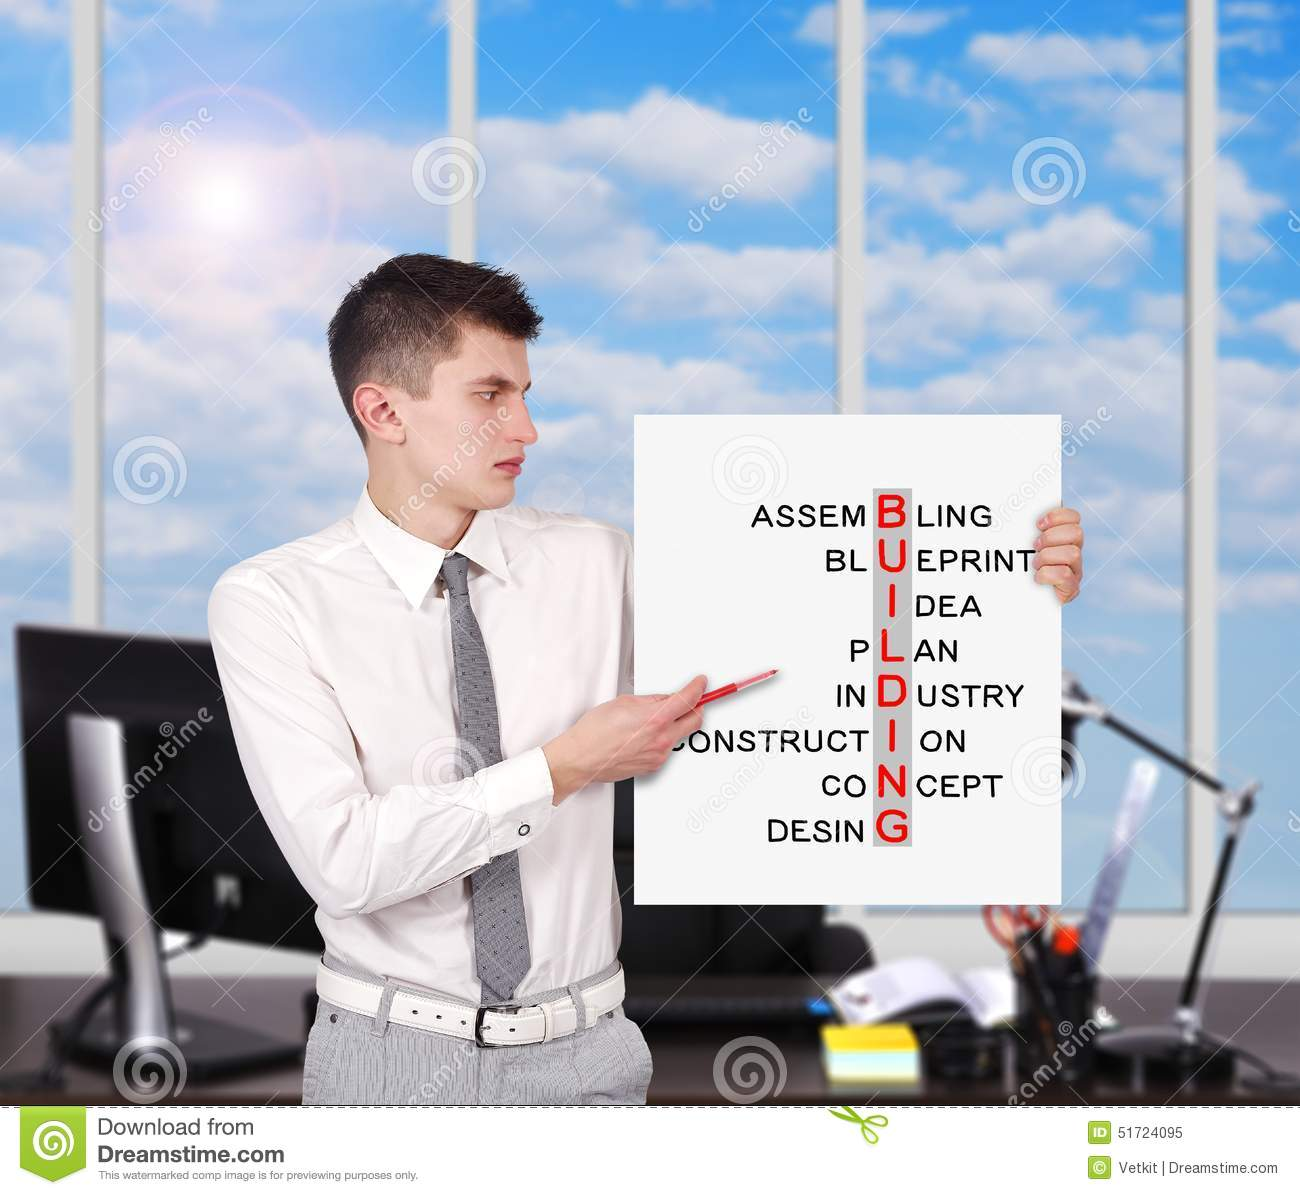 Placard Crossword Building Crossword Stock Image Image Of Placard Boardroom 51724095